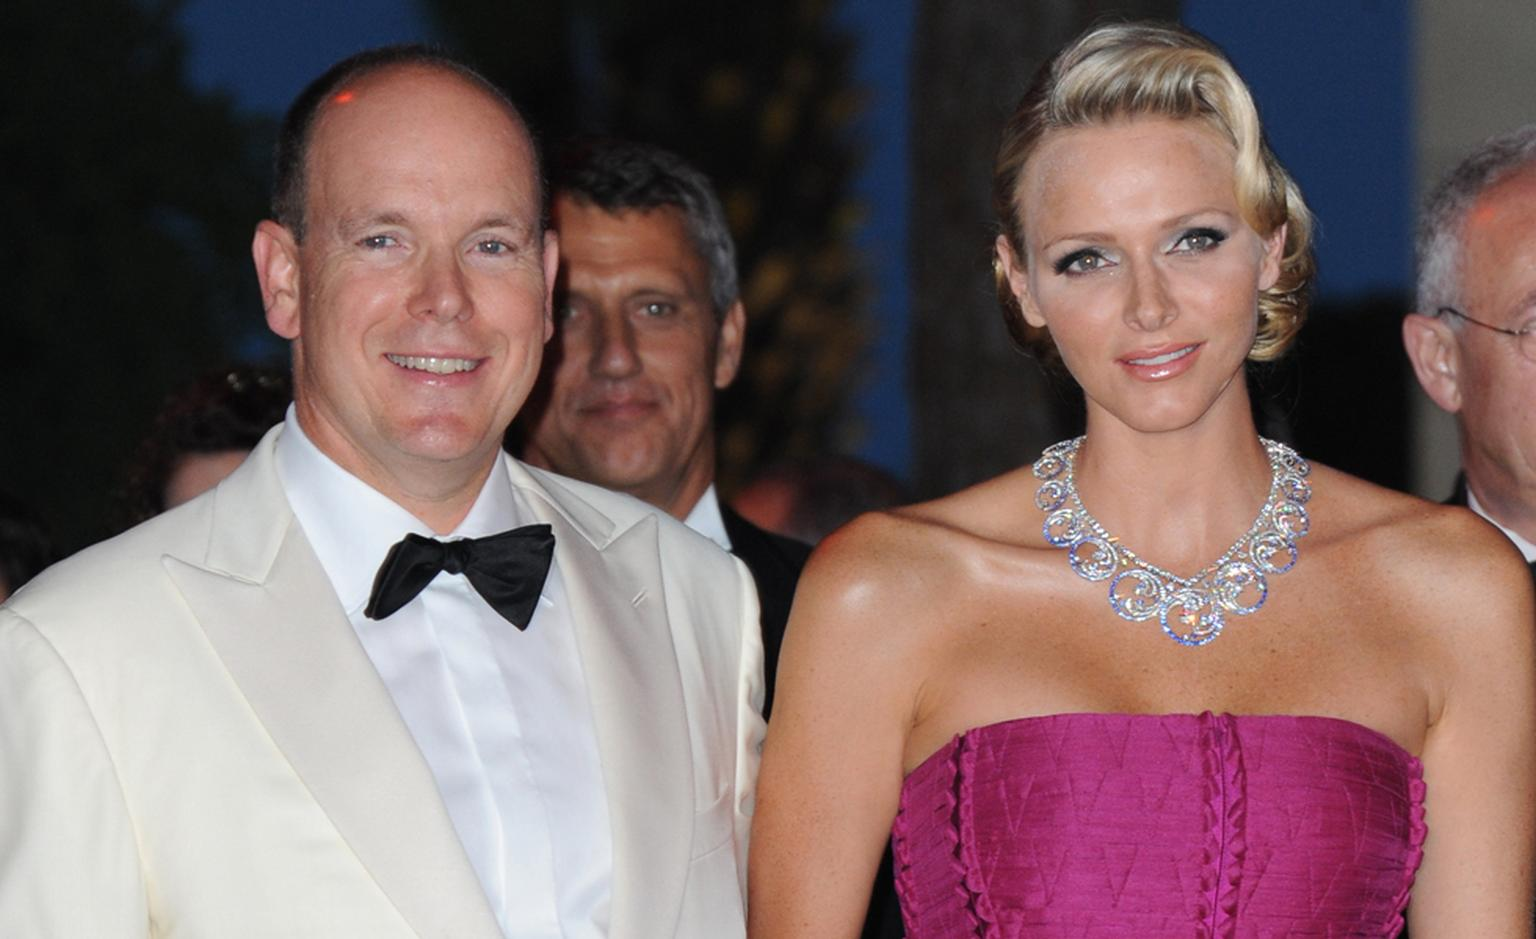 Van Cleef Arpels necklace Royal Gift from the Prince to the Princess. Red Cross Ball 2011 in Monaco